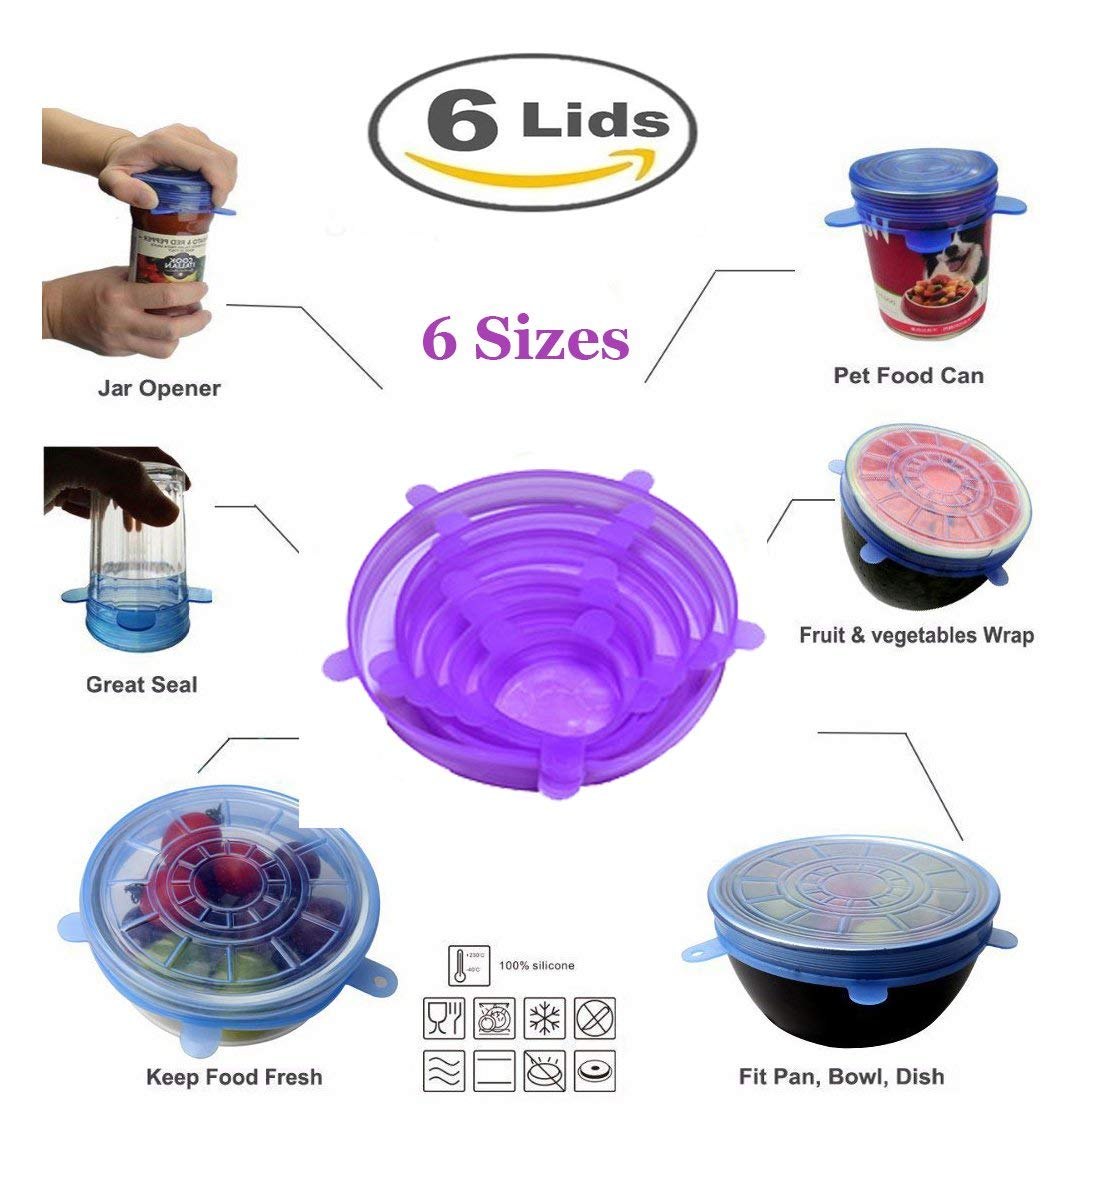 Silicone Stretch Lids Reusable,6-Pack Of Various Sizes Silicone Bowl Lids,Food Saver Covers,Wrap Bowl Pot Cup Lid- BPA Free,Dishwasher,Microwave,Oven and Freezer Safe (6 pcs, Purple)